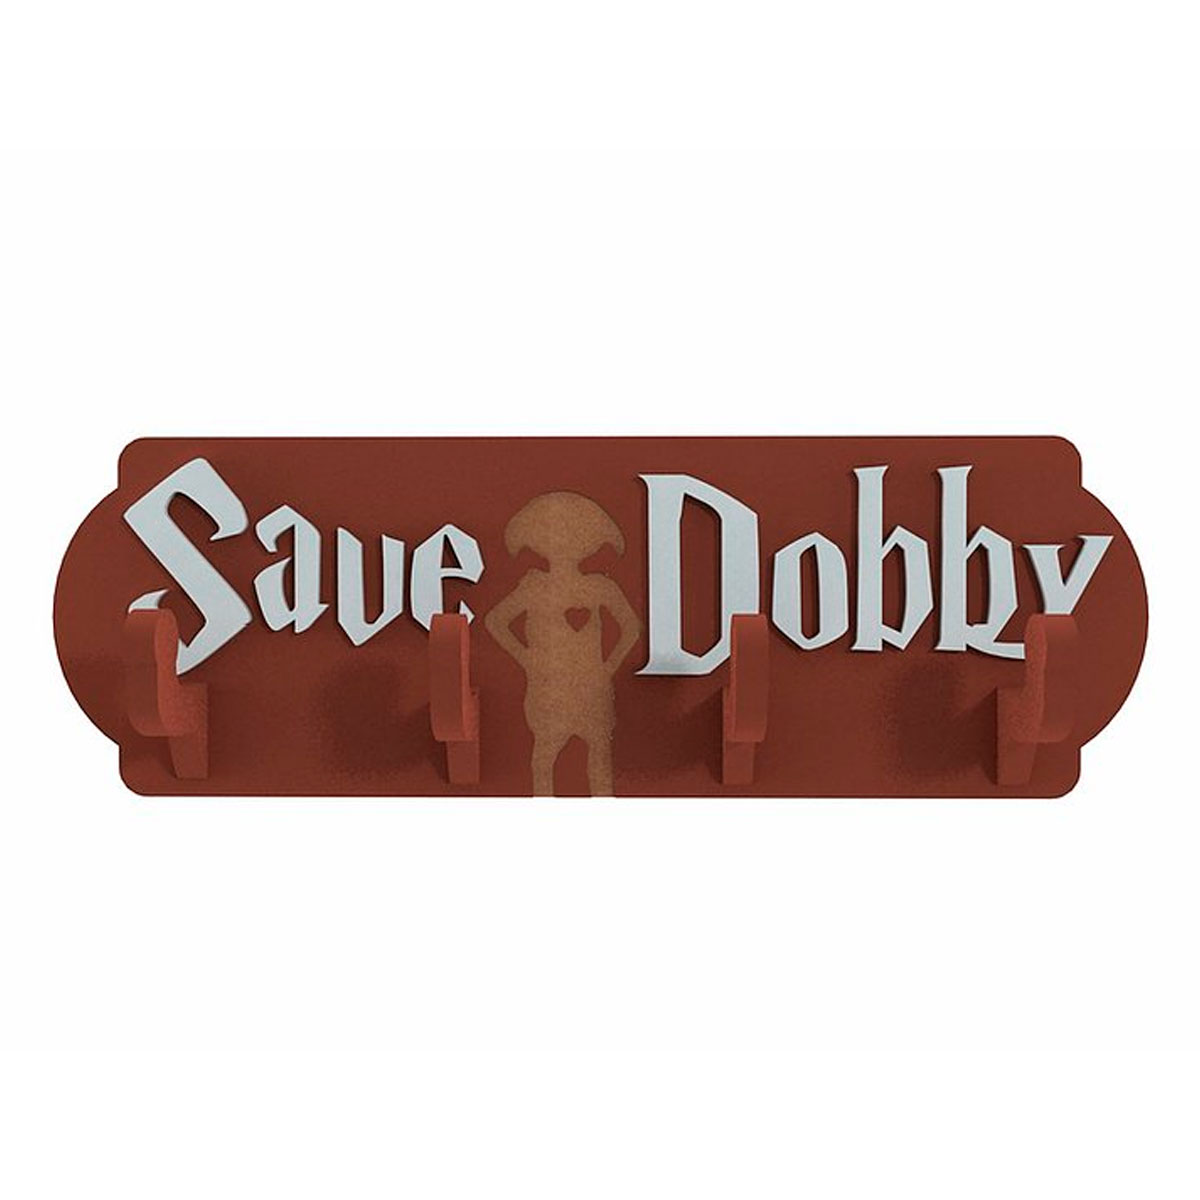 Cabideiro Porta Chaves de Madeira Harry Potter Save Dobby - Presente Super